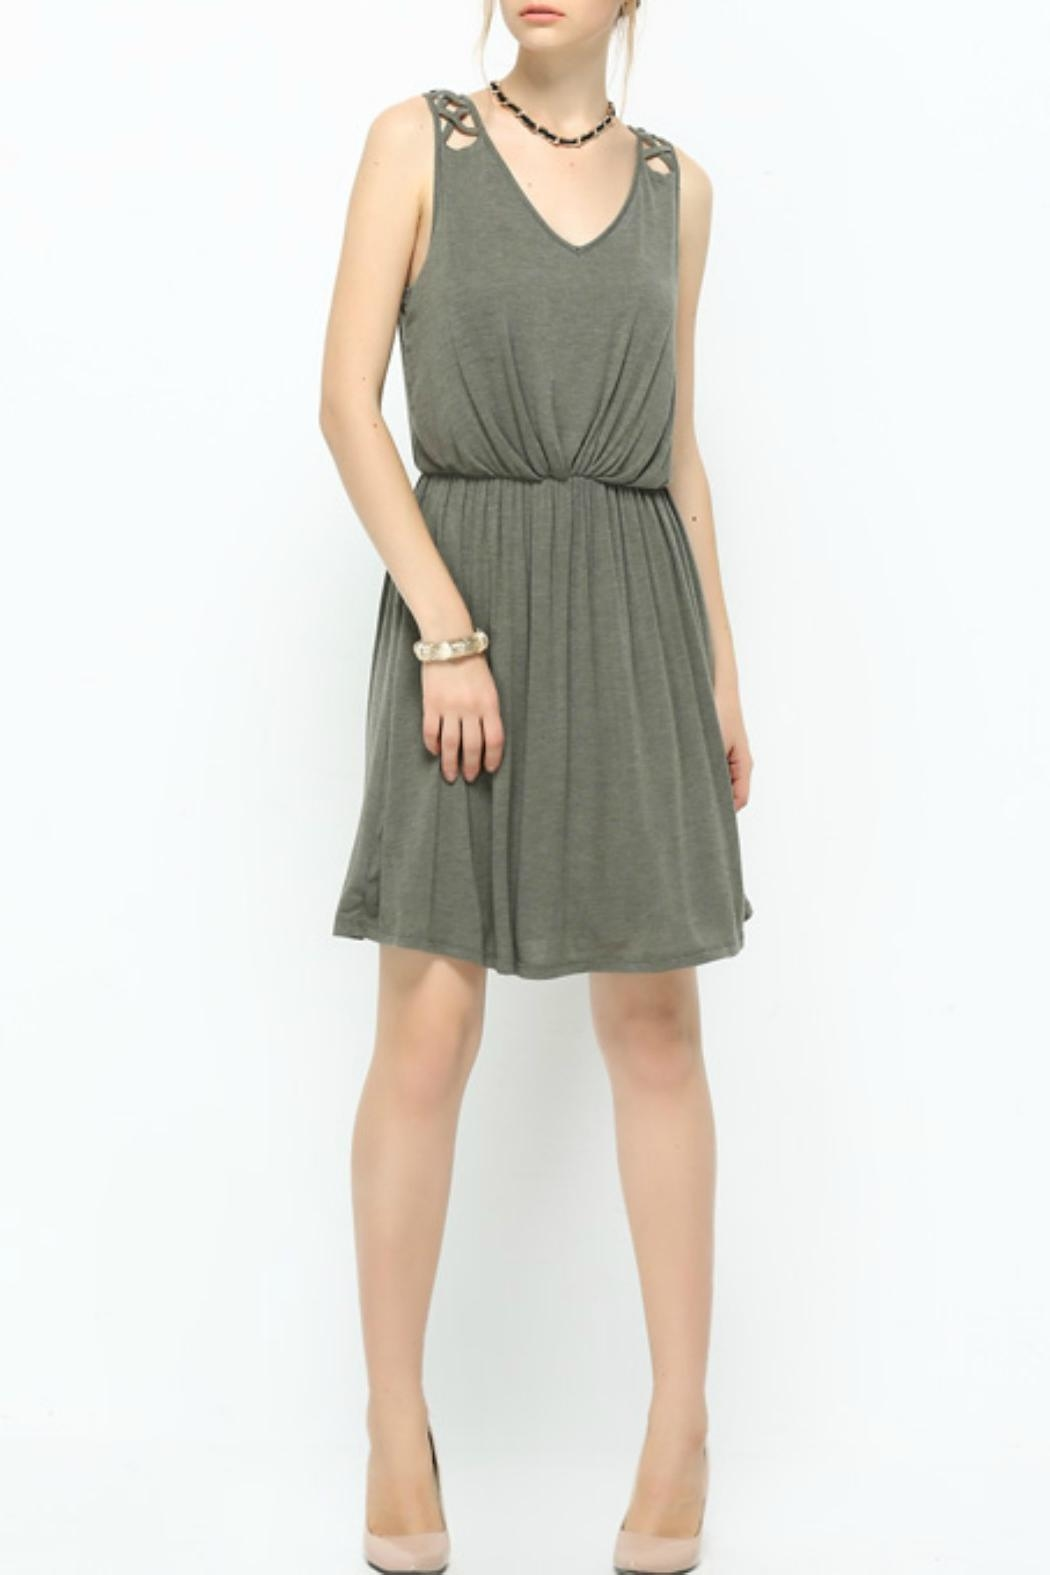 Naked Zebra Olive Latice-Trim Dress - Main Image